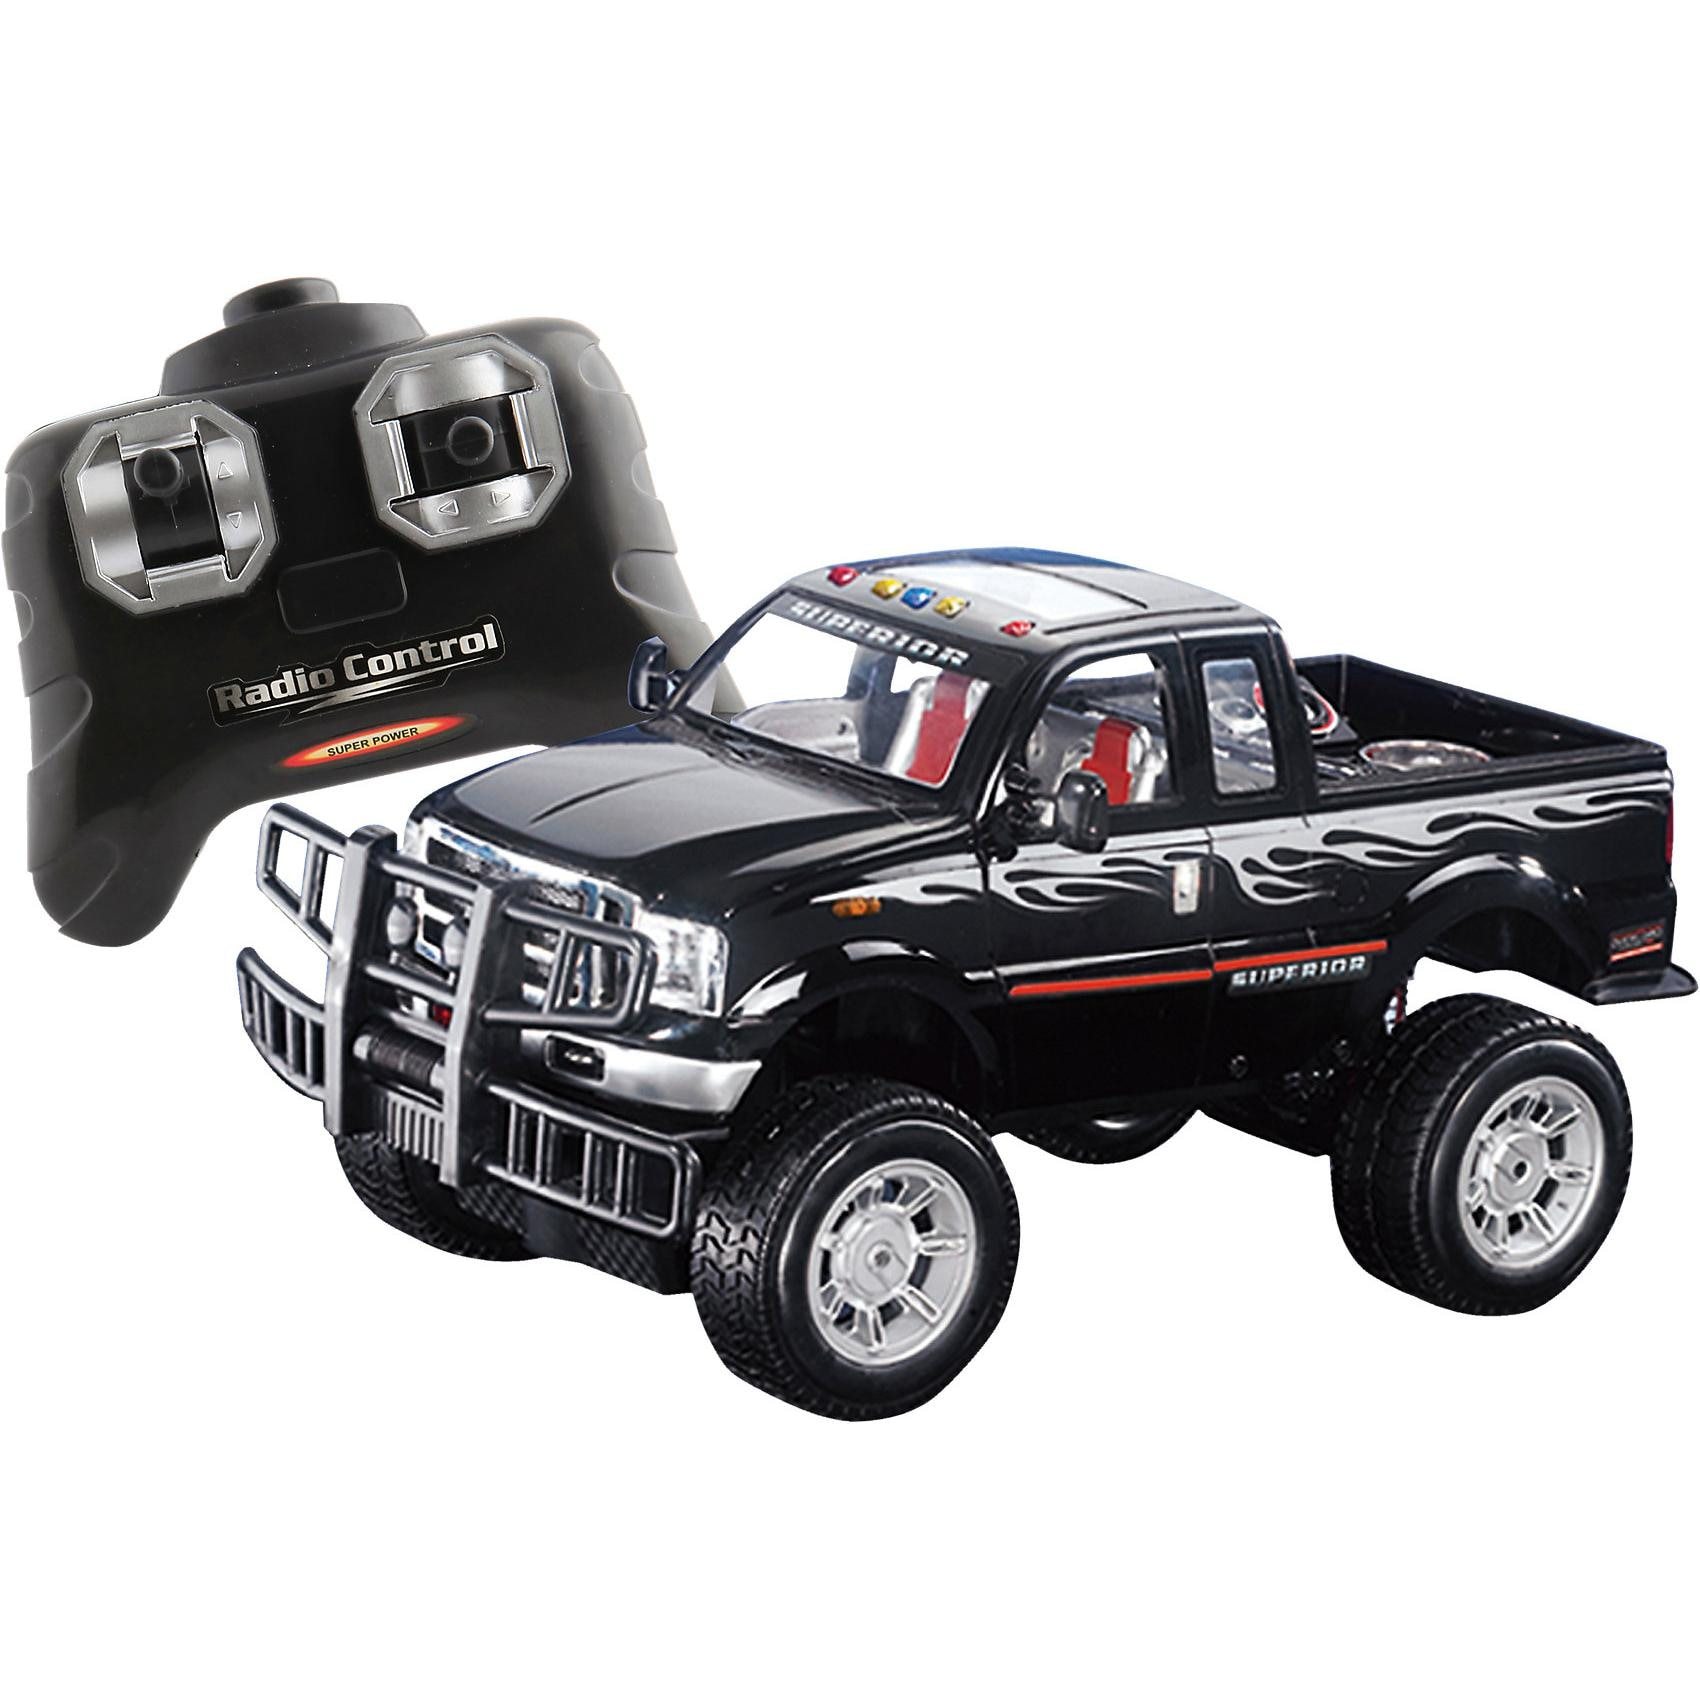 The Toy Company RC Racer Off Road Jeep 27 MHz